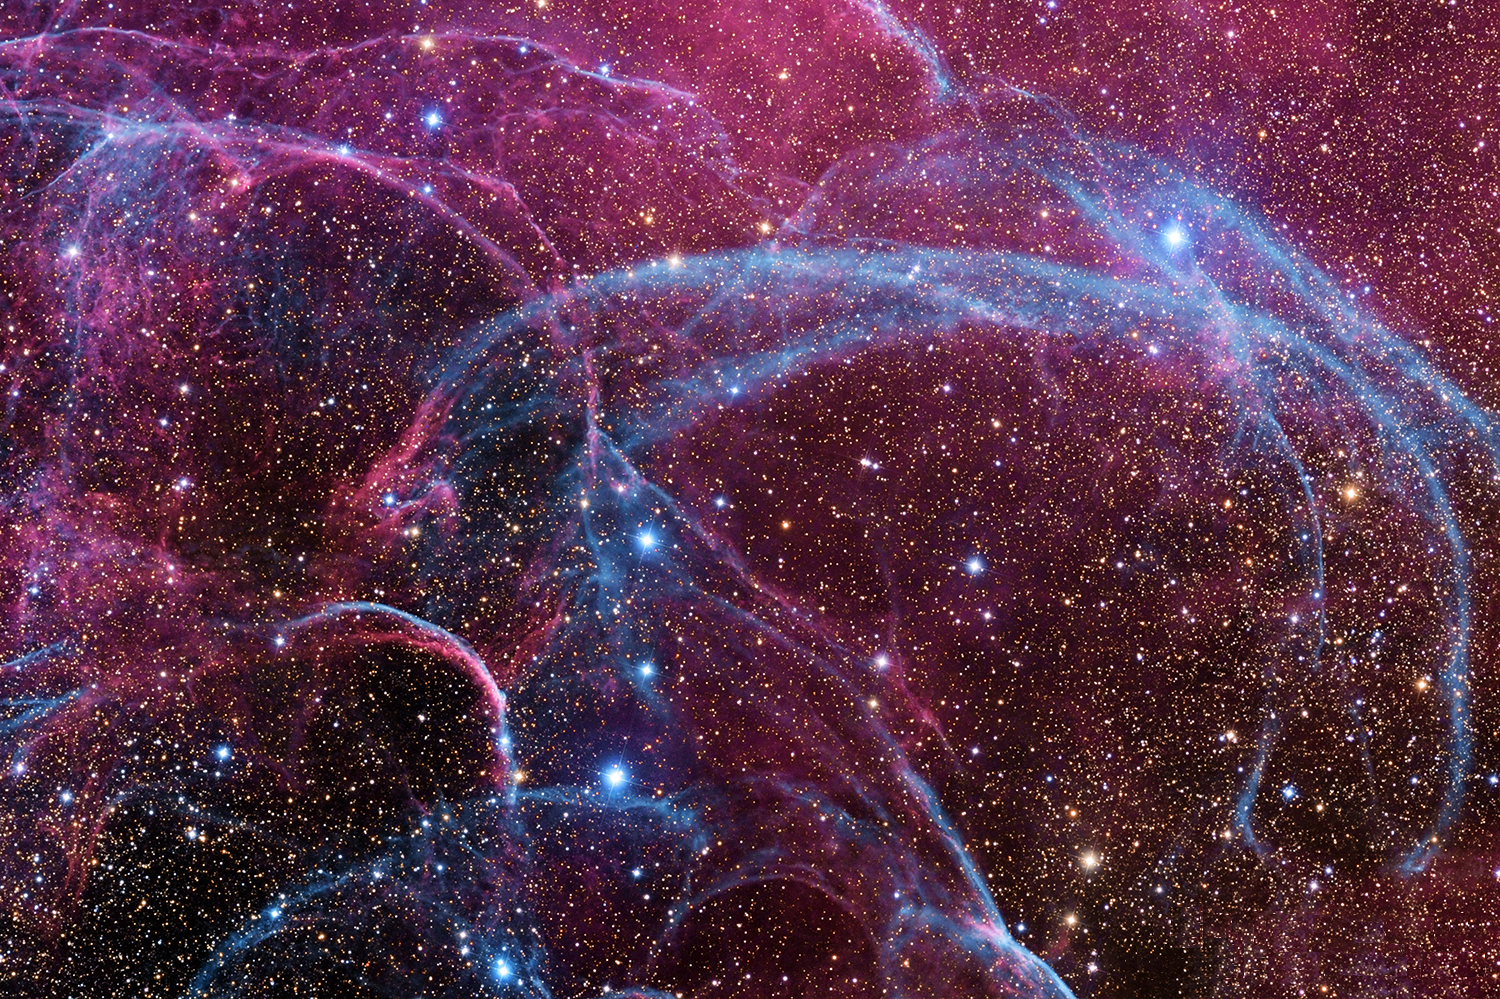 Filaments of the Vela Supernova Remnant    The explosion is over but the consequences continue. About eleven thousand years ago a star in the constellation of Vela could be seen to explode, creating a strange point of light briefly visible to humans living near the beginning of recorded history. The outer layers of the star crashed into the interstellar medium, driving a shock wave that is still visible today. A roughly spherical, expanding shock wave is visible in X-rays. This image captures some of that filamentary and gigantic shock in visible light. As gas flies away from the detonated star, it decays and reacts with the interstellar medium, producing light in many different colors and energy bands. Remaining at the center of the Vela Supernova Remnant is a pulsar, a star as dense as nuclear matter that rotates completely around more than ten times in a single second.  Image Credit & Copyright: Angus Lau, Y Van, SS Tong Explanation from: http://apod.nasa.gov/apod/ap131001.html